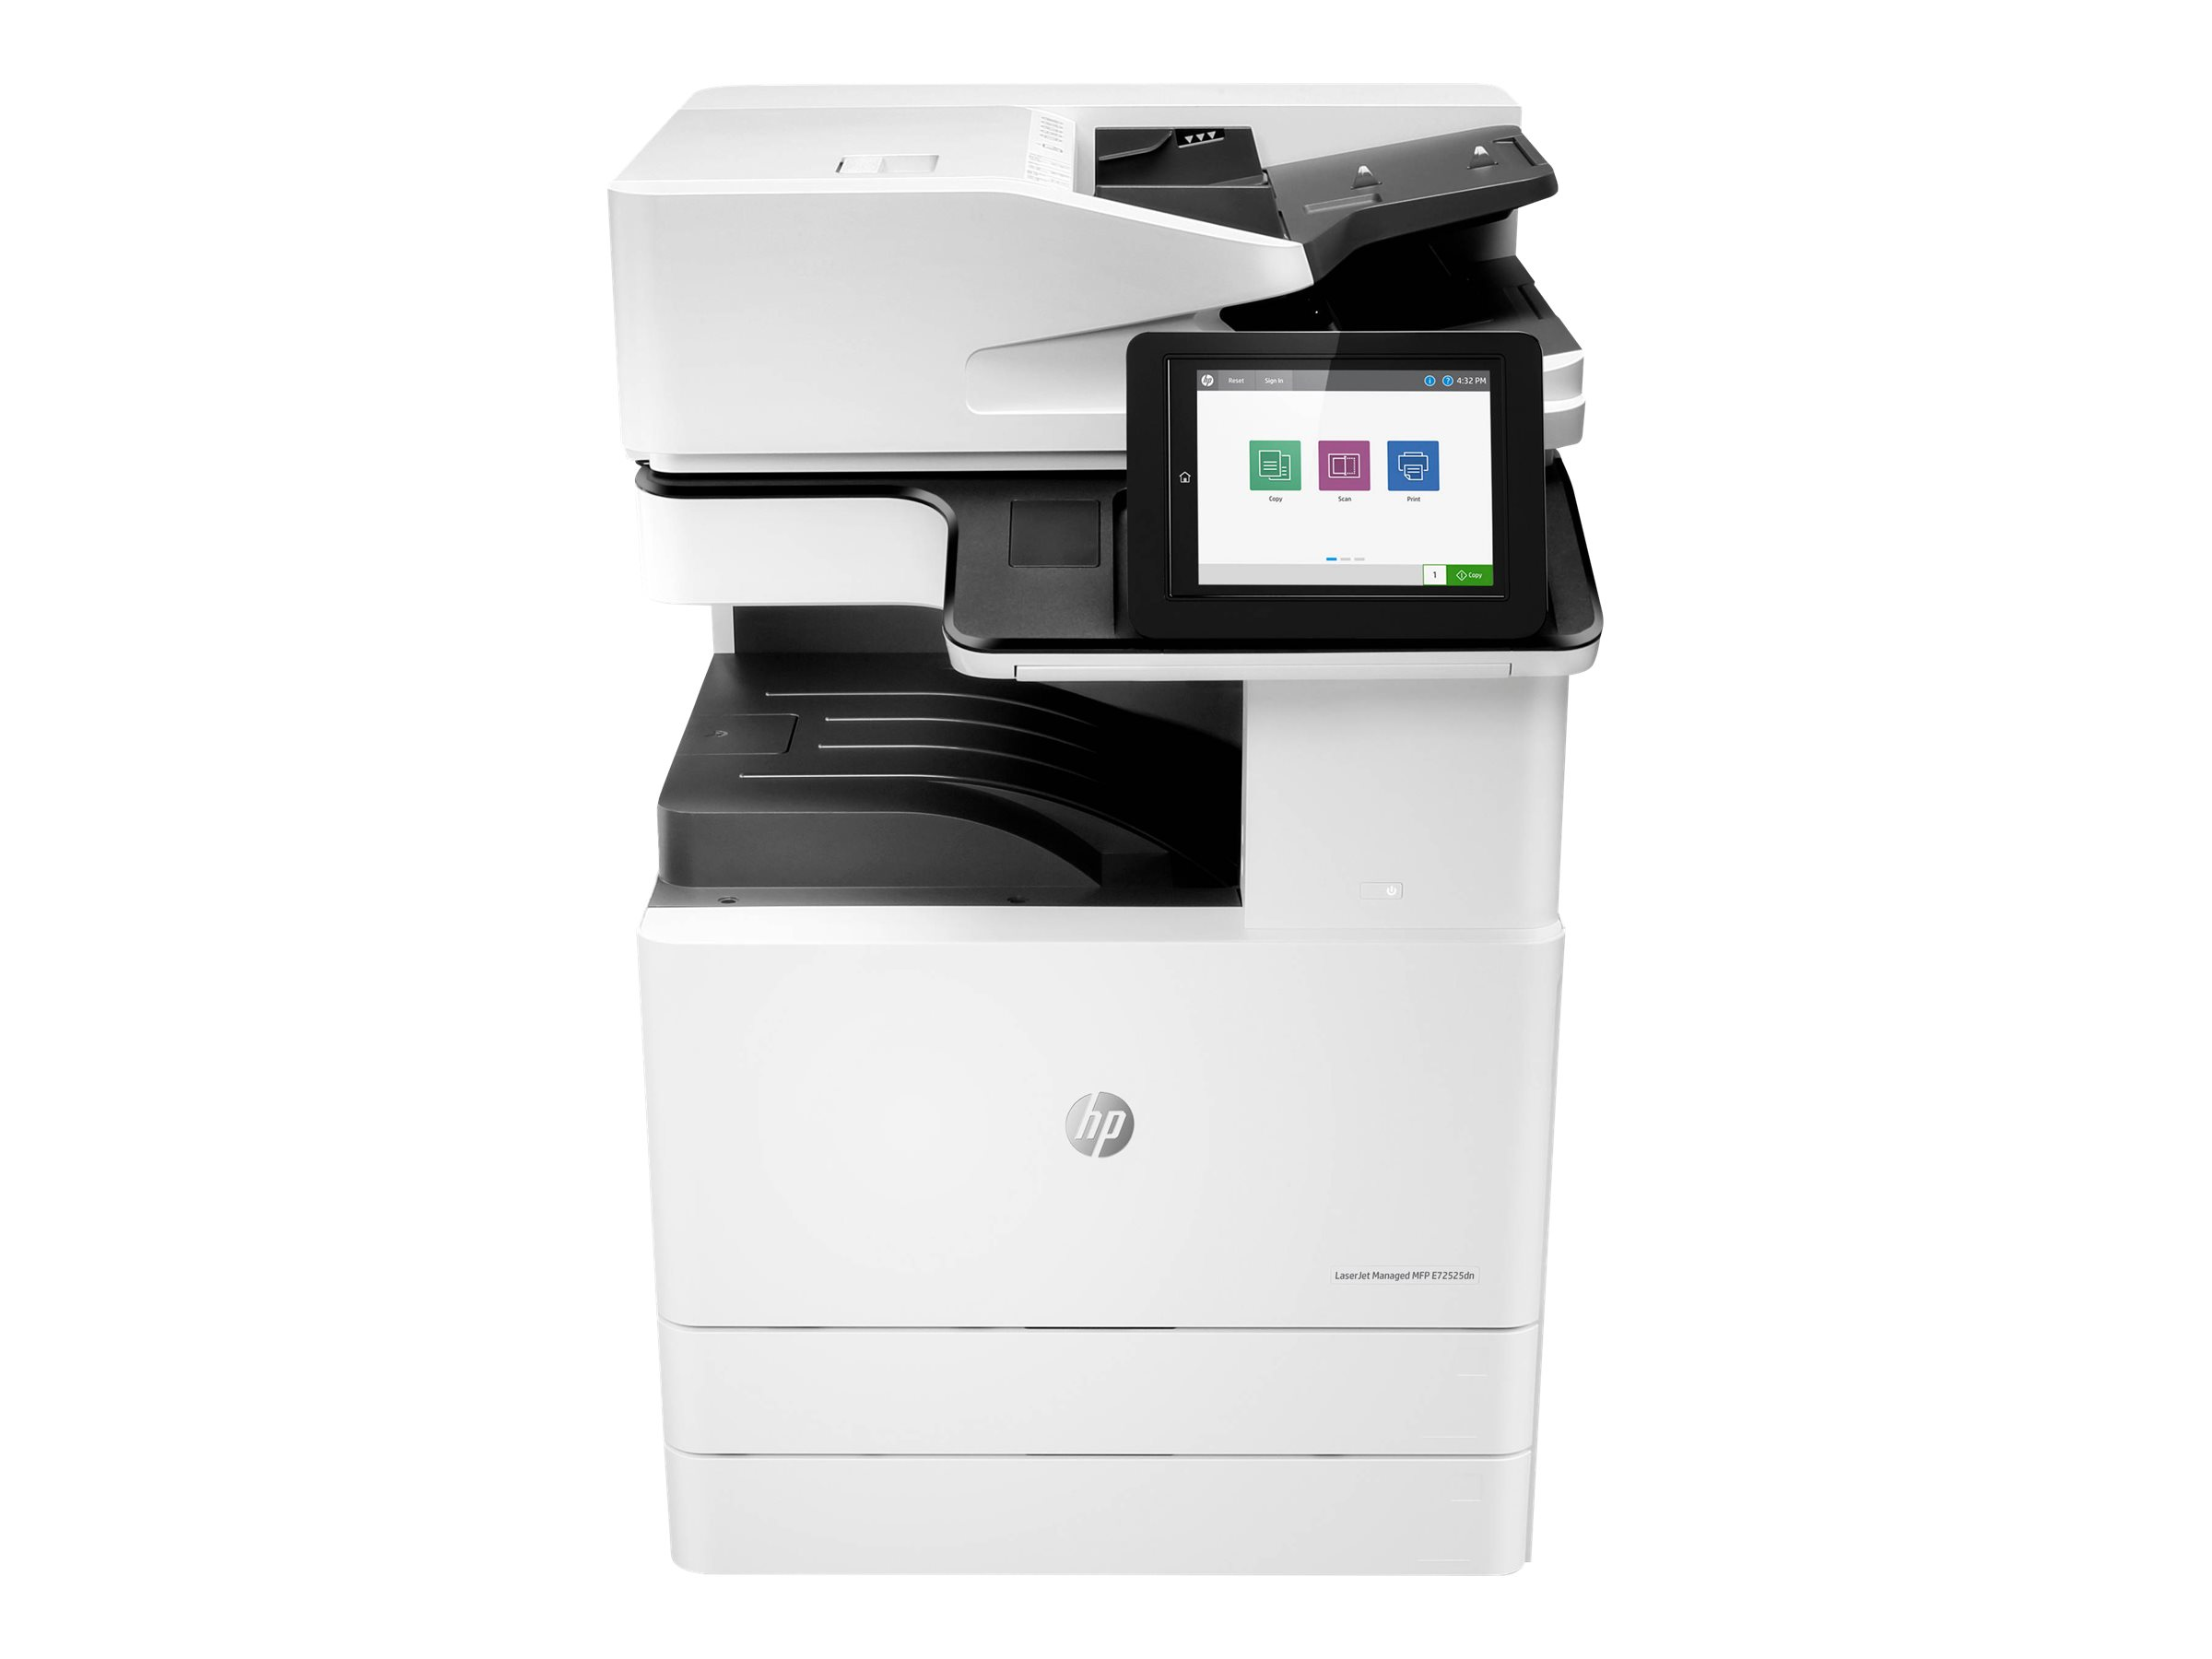 Copieur LaserJet Managed Flow MFP HP E72530z - vitesse 30ppm vue avant